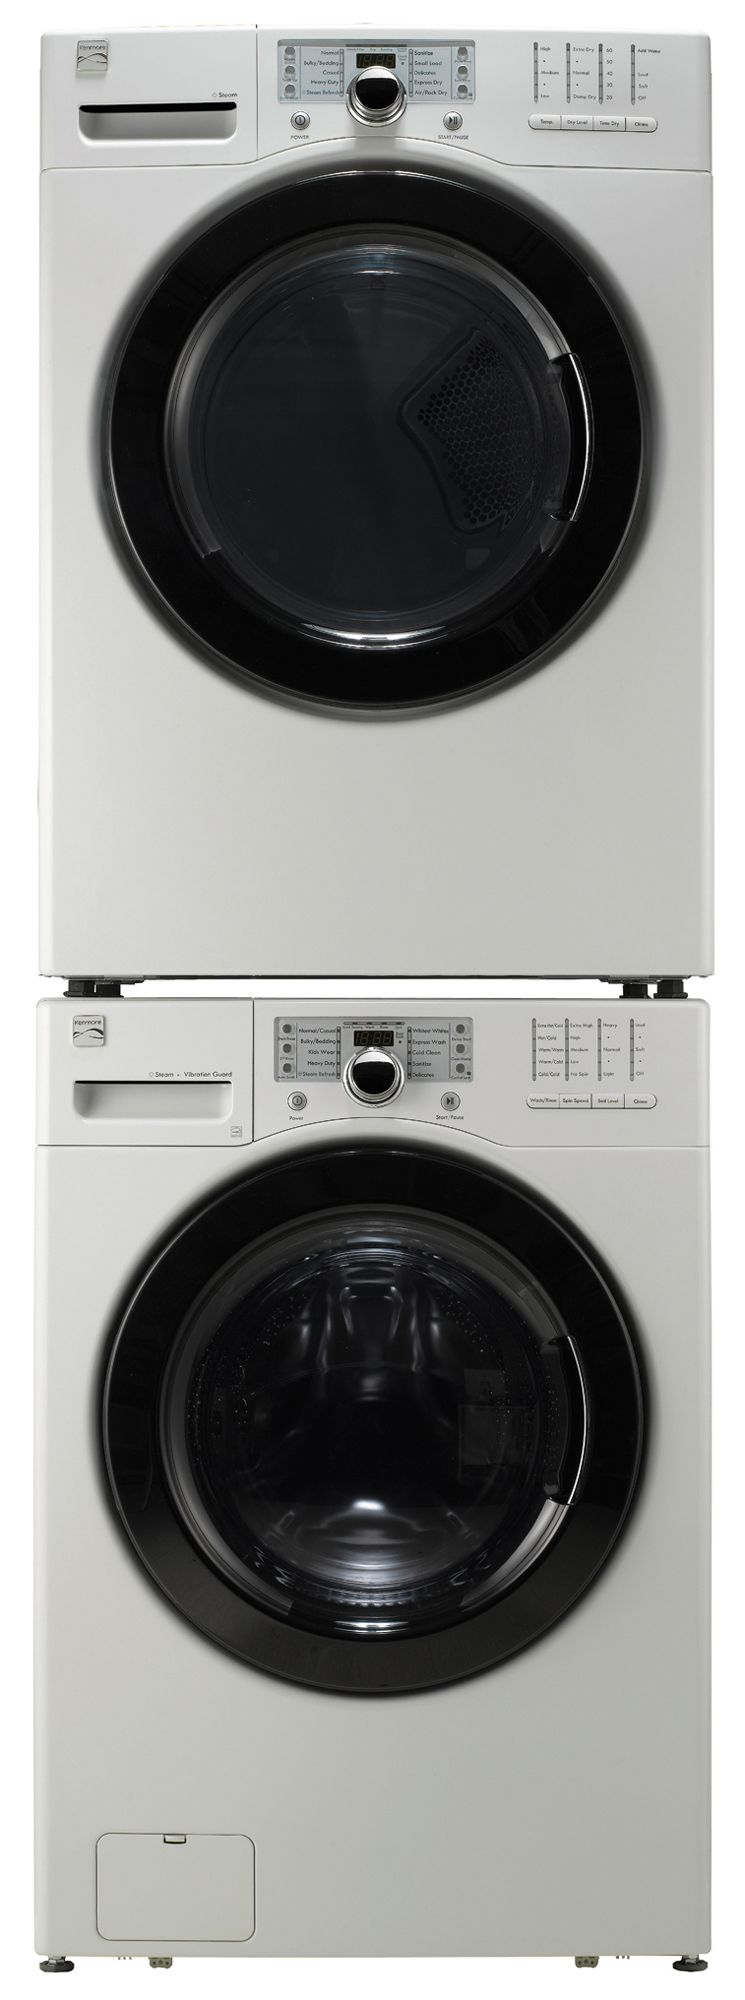 Kenmore 7.3 cu. ft. Electric Steam Dryer - White